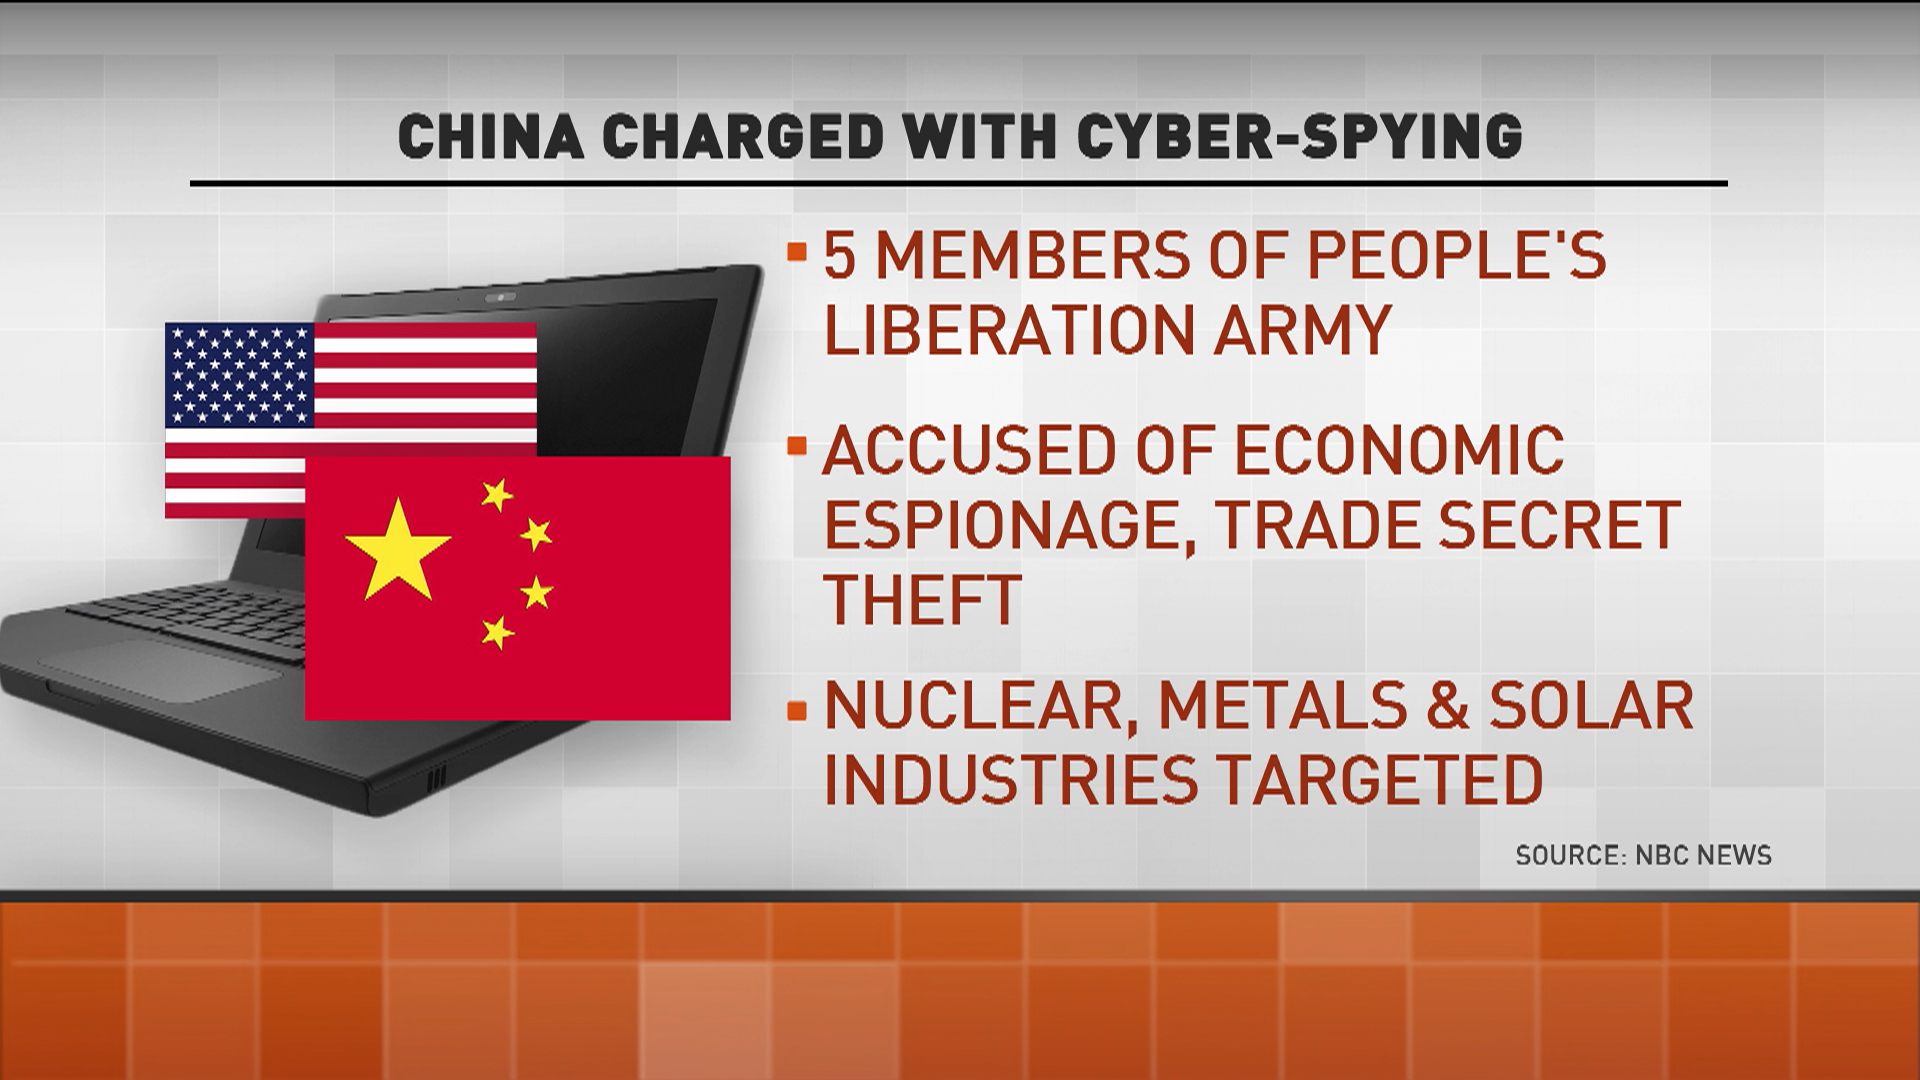 U.S. charges China with cyber-spying